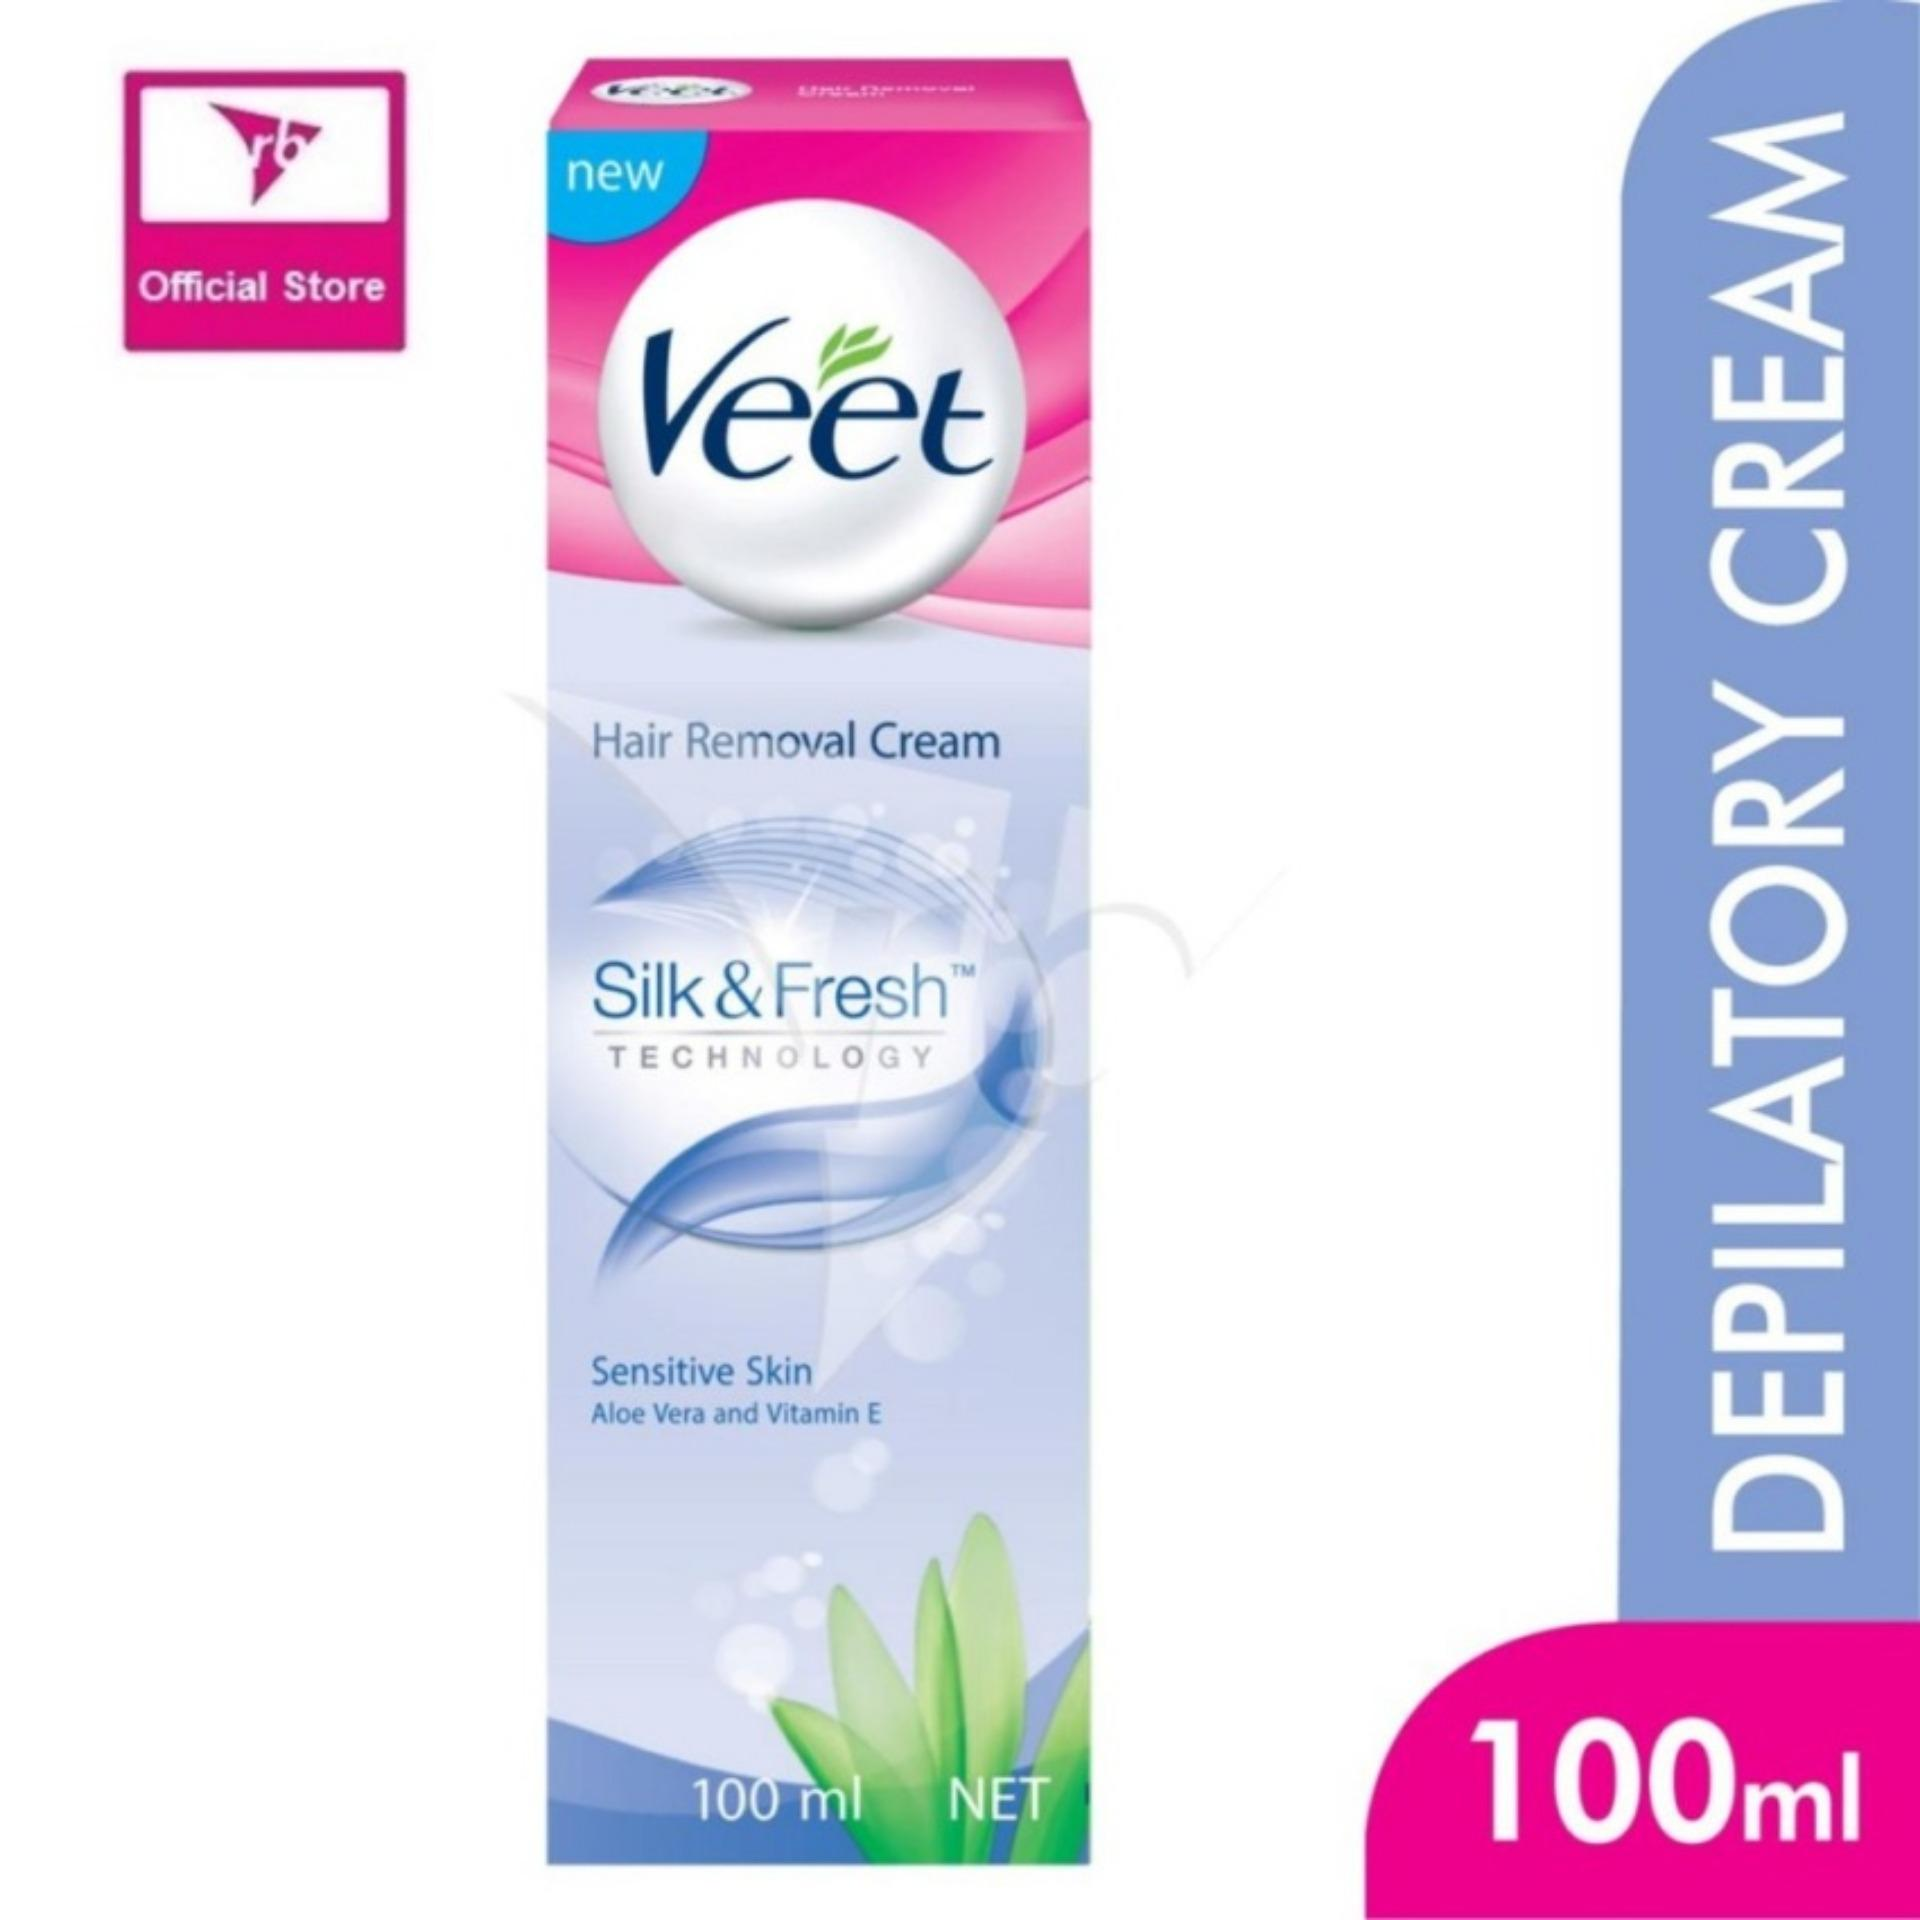 Compare Veet Sensitive Touch Electric Trimmer 1 Free Wax Flash Cream For Skin 100ml